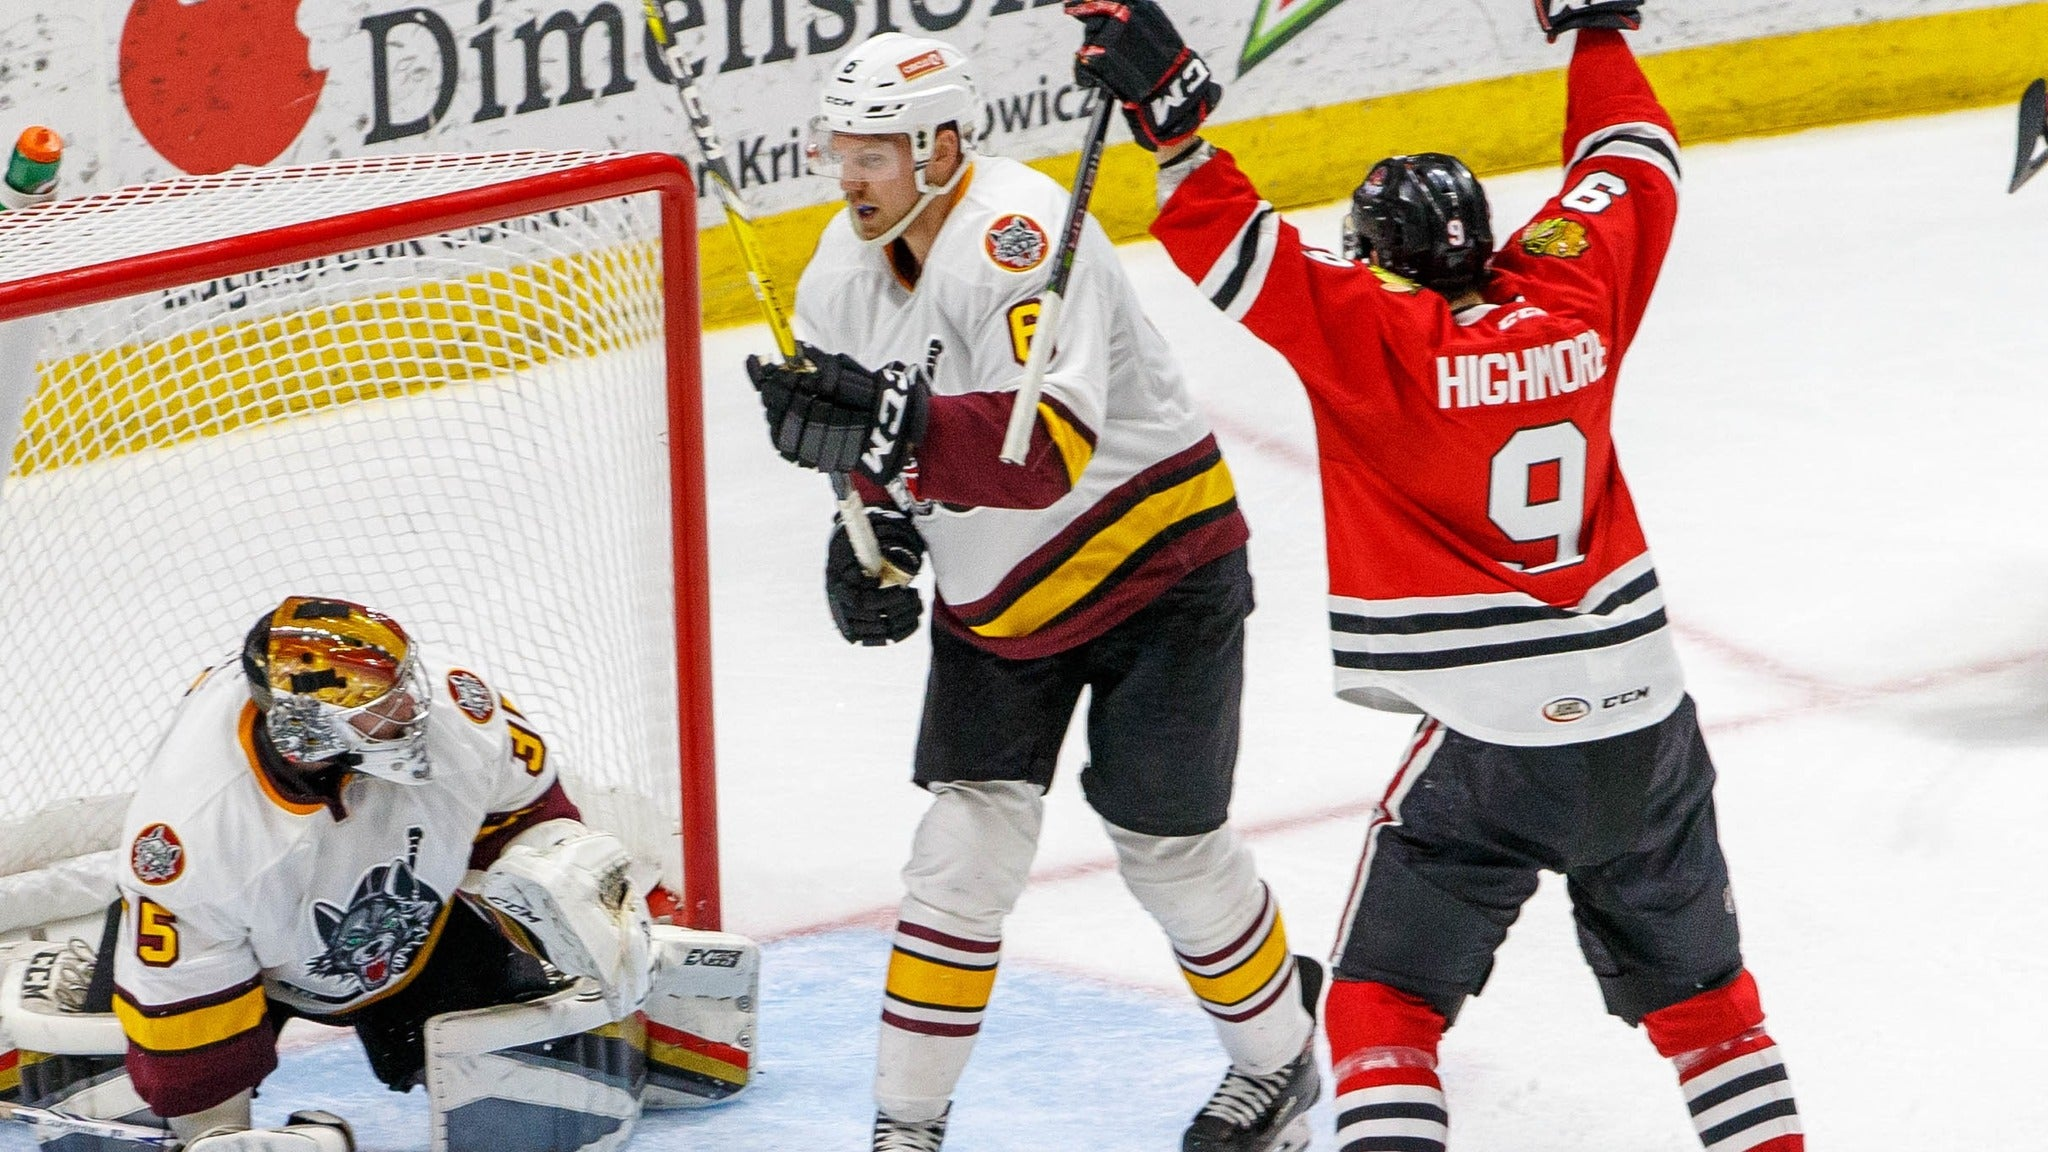 Rockford IceHogs vs. Grand Rapids Griffins